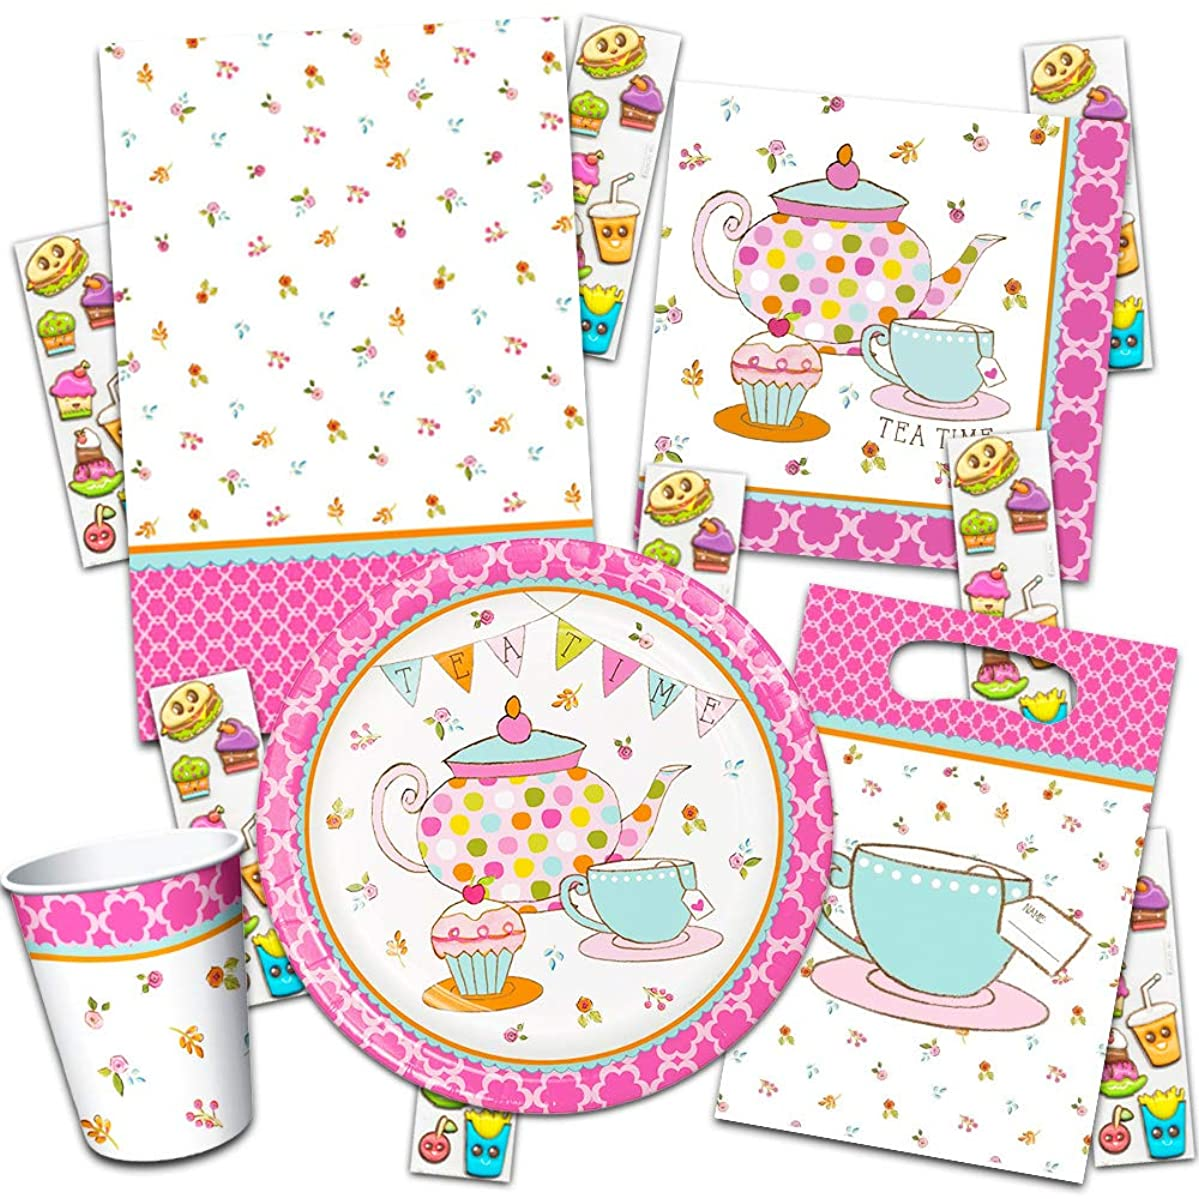 Tea Time Party Supplies Ultimate Set ~ Birthday Party Decorations, Party Favors, Plates, Cups, Napkins and More (Tea Time Party Supplies)